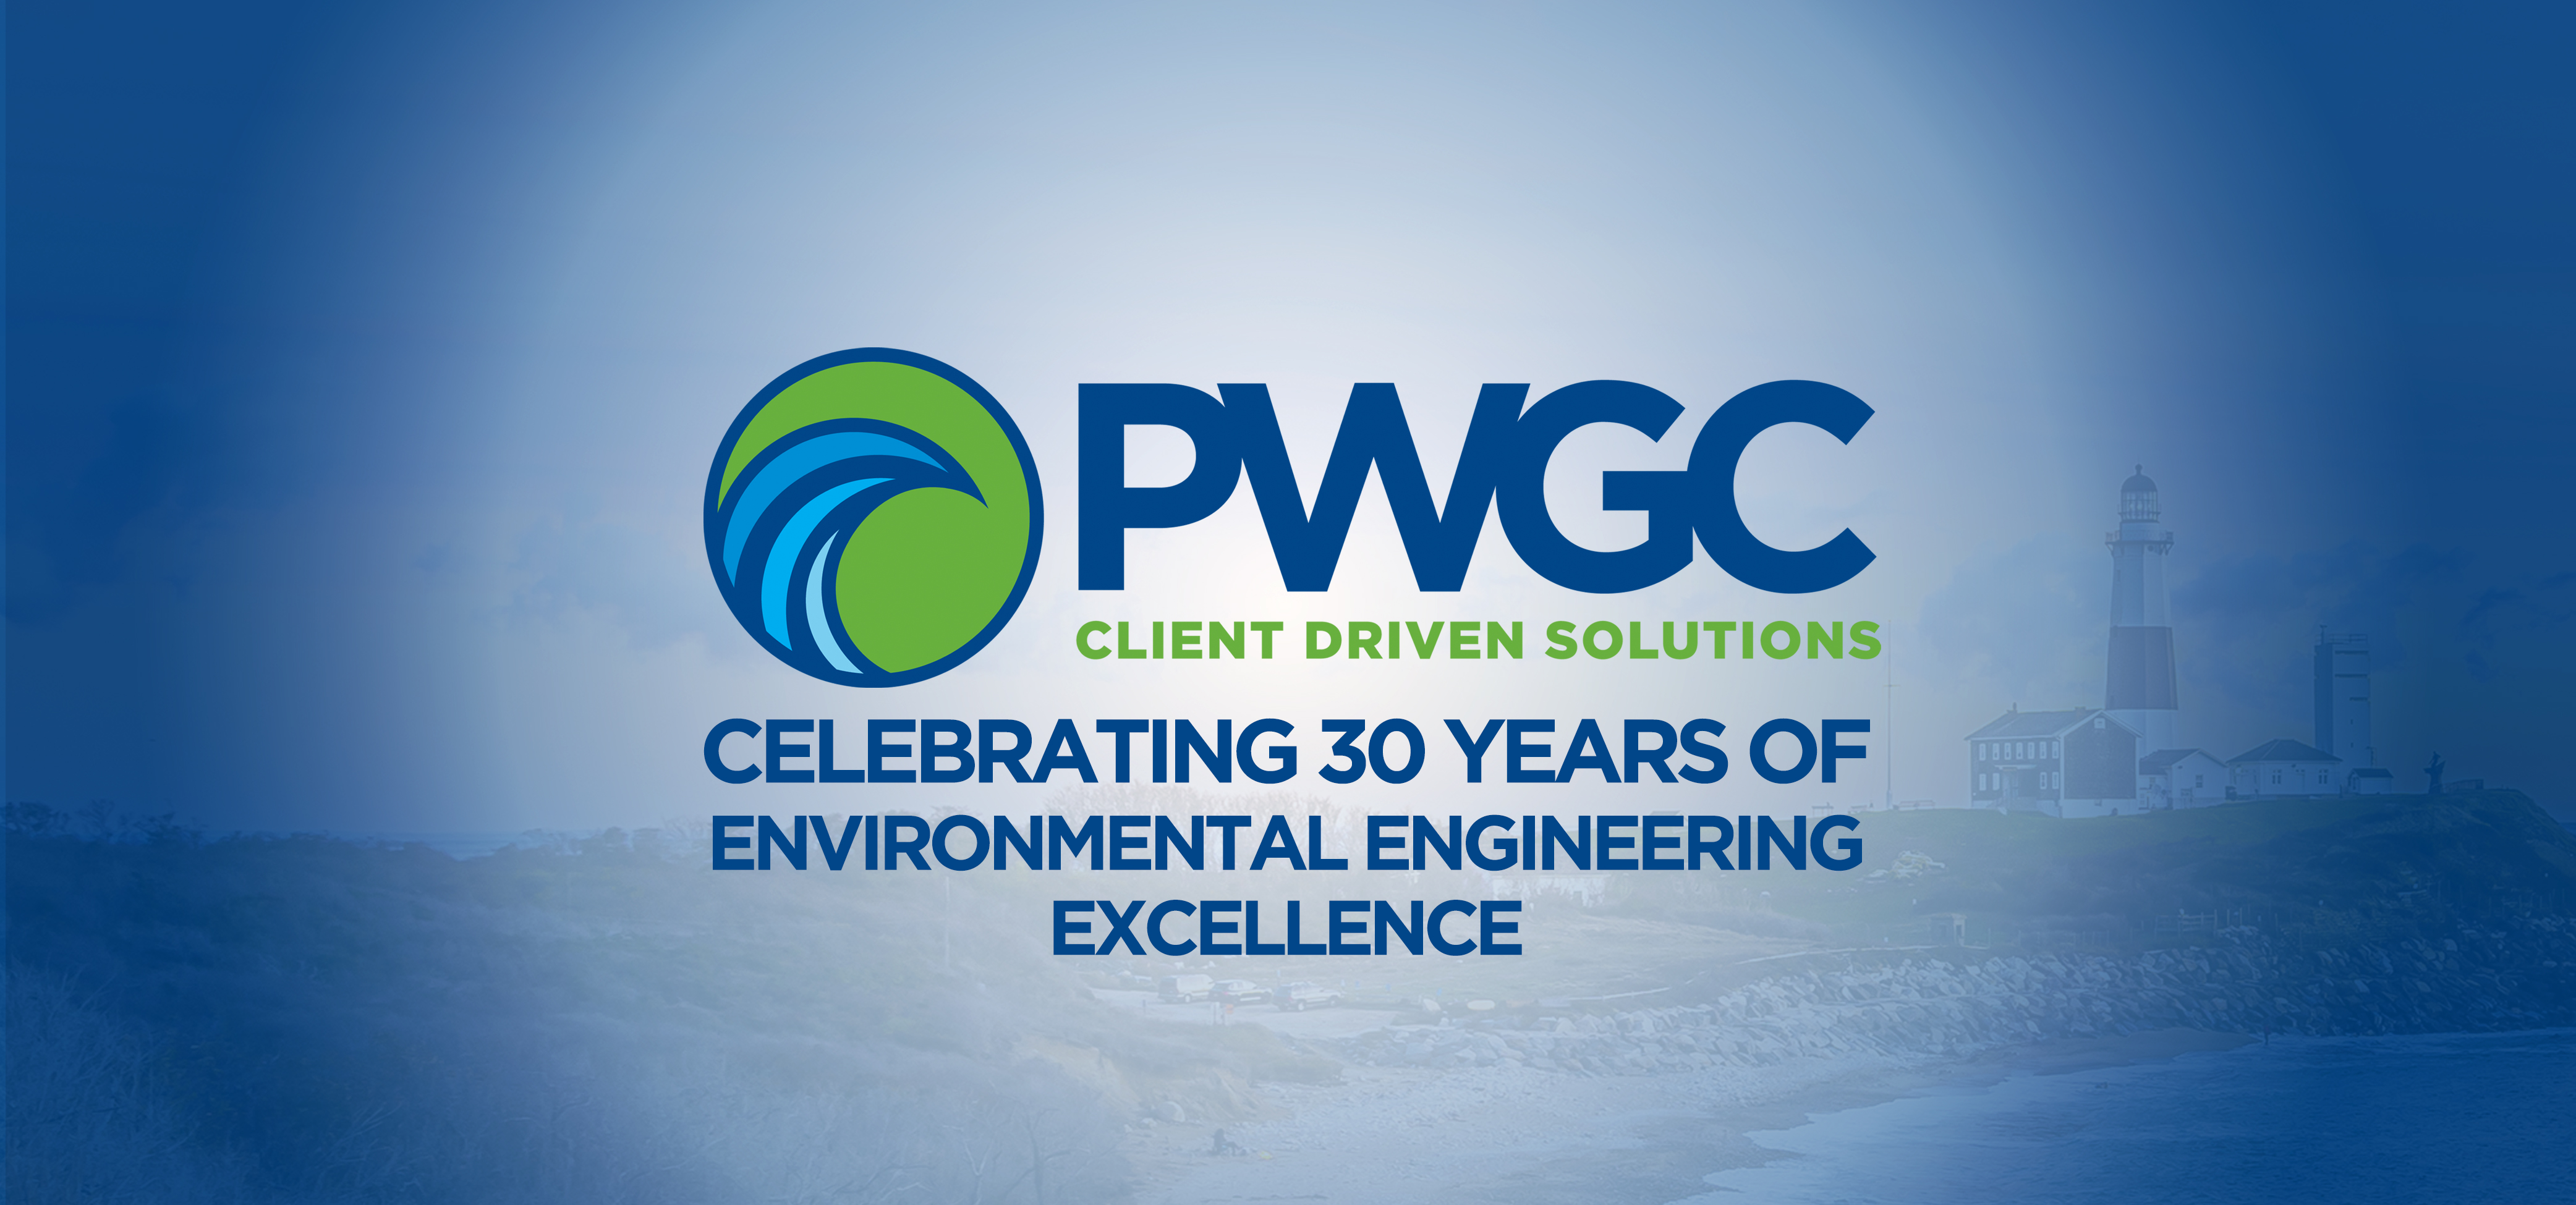 Celebrating 30 Years of excellence